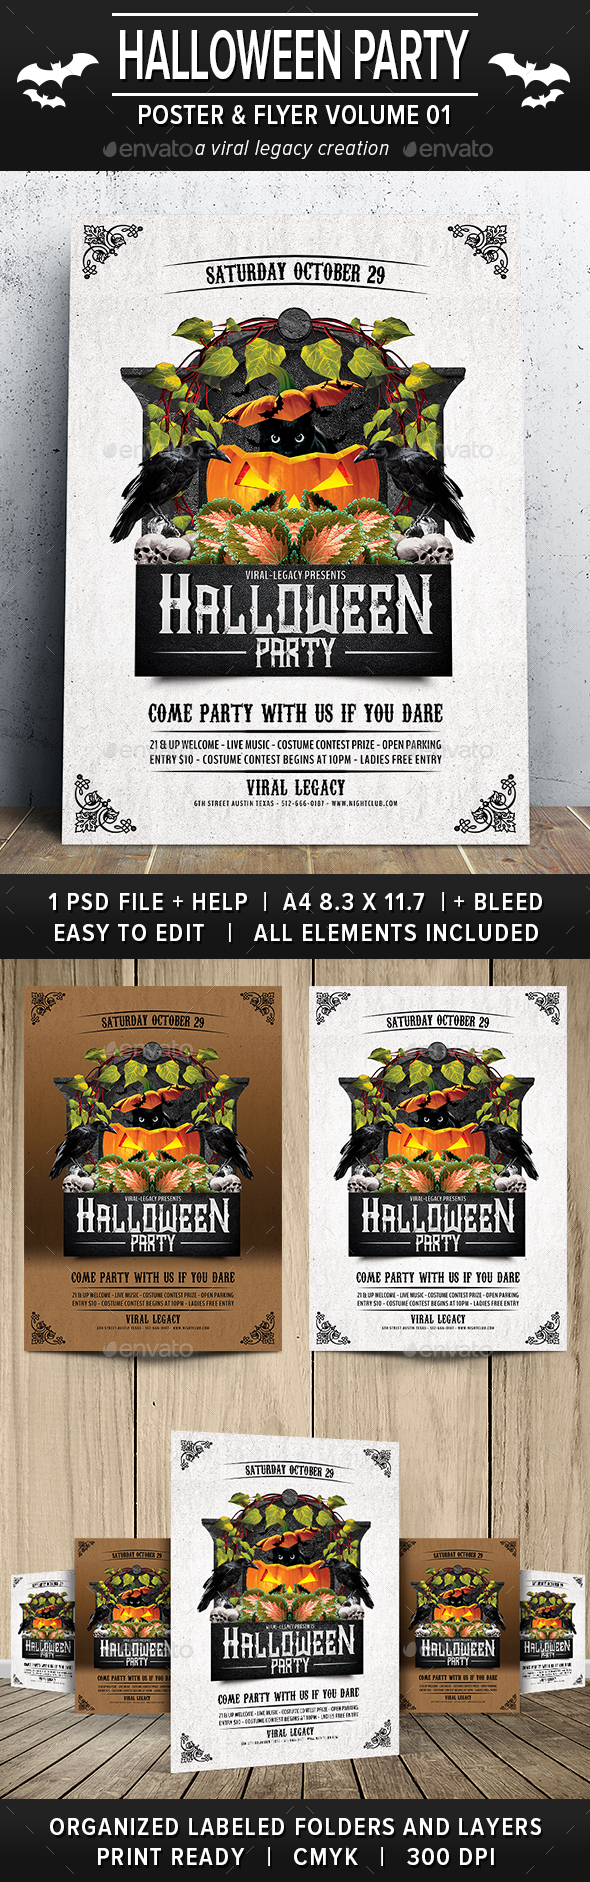 Halloween Party Poster / Flyer V01 - Holidays Events